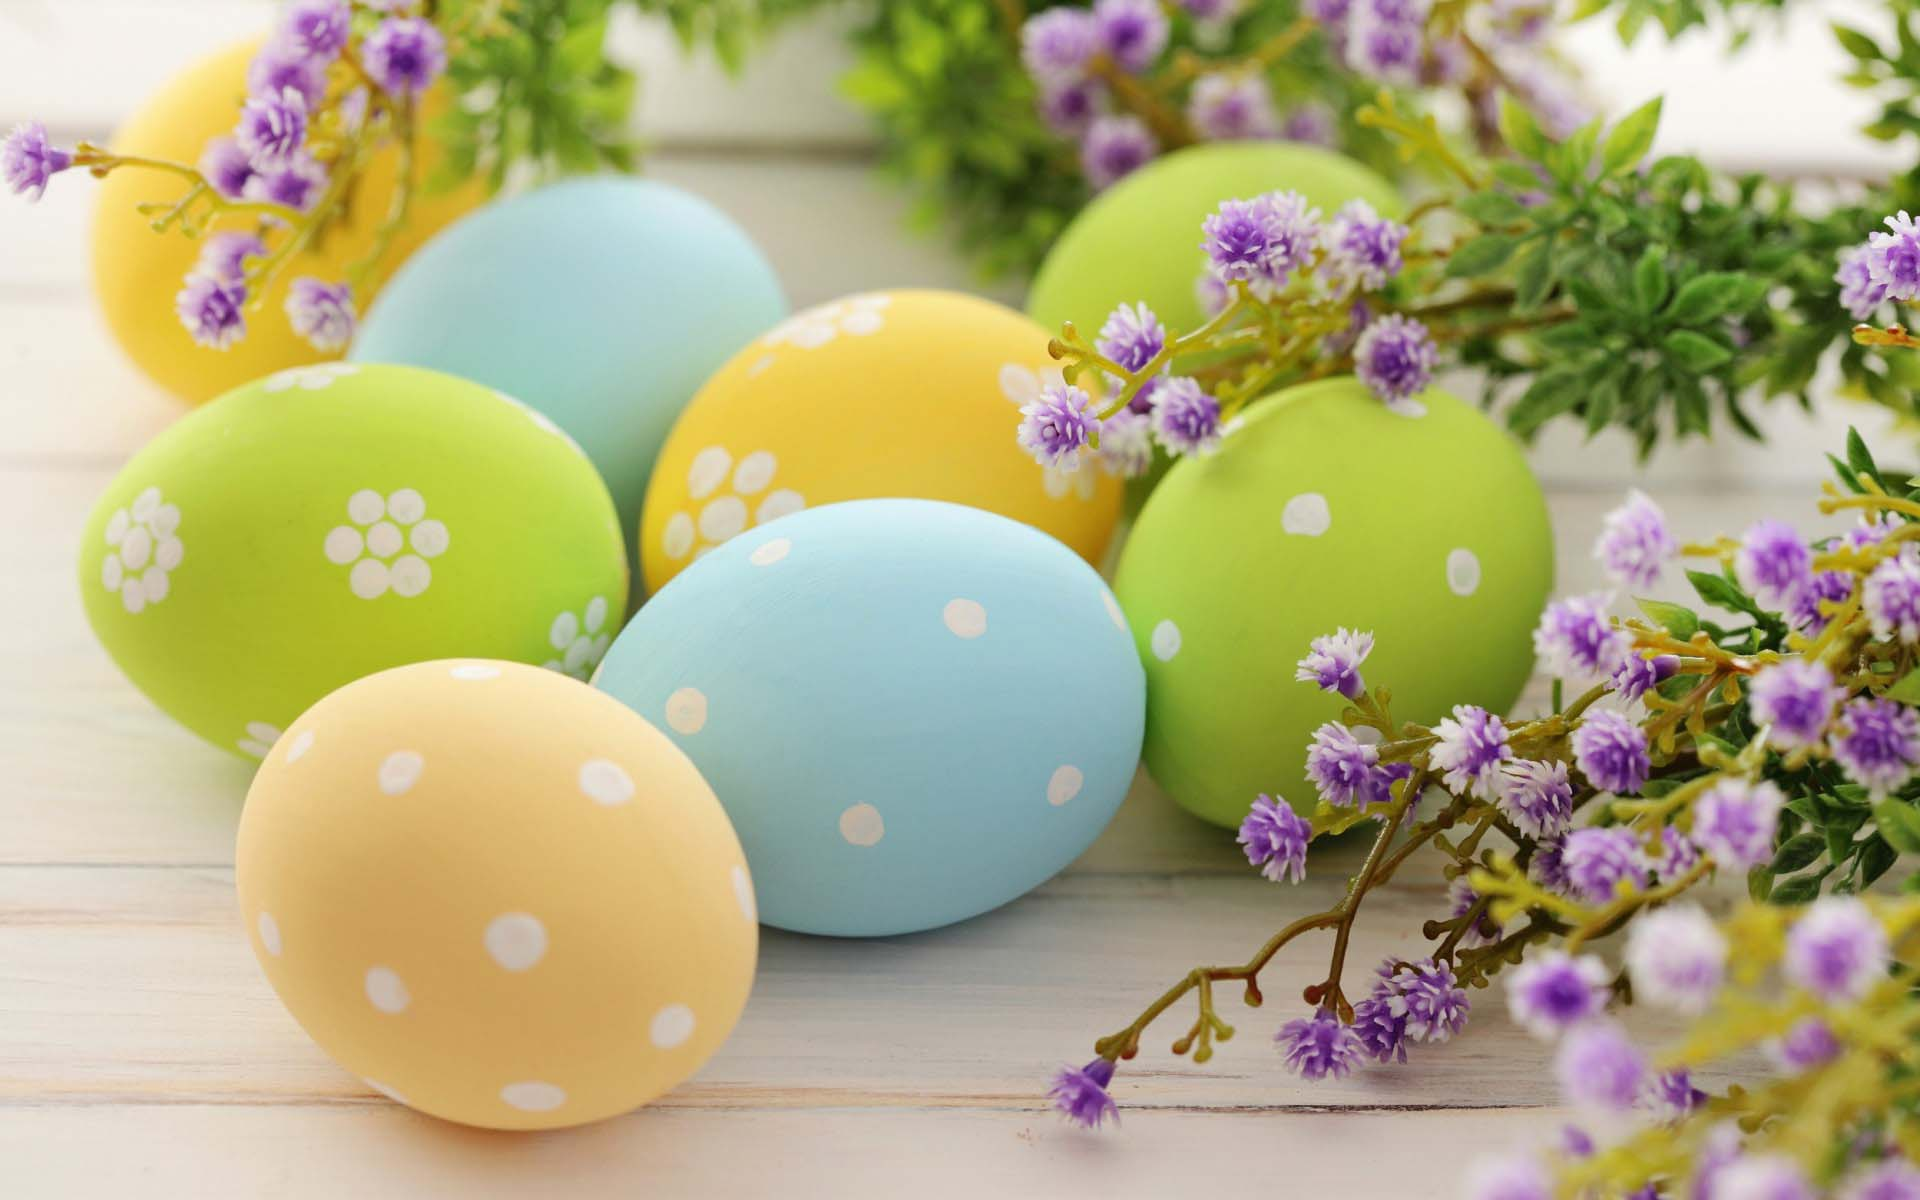 Happy Easter Desktop Wallpapers HD Easter Images 1920x1200